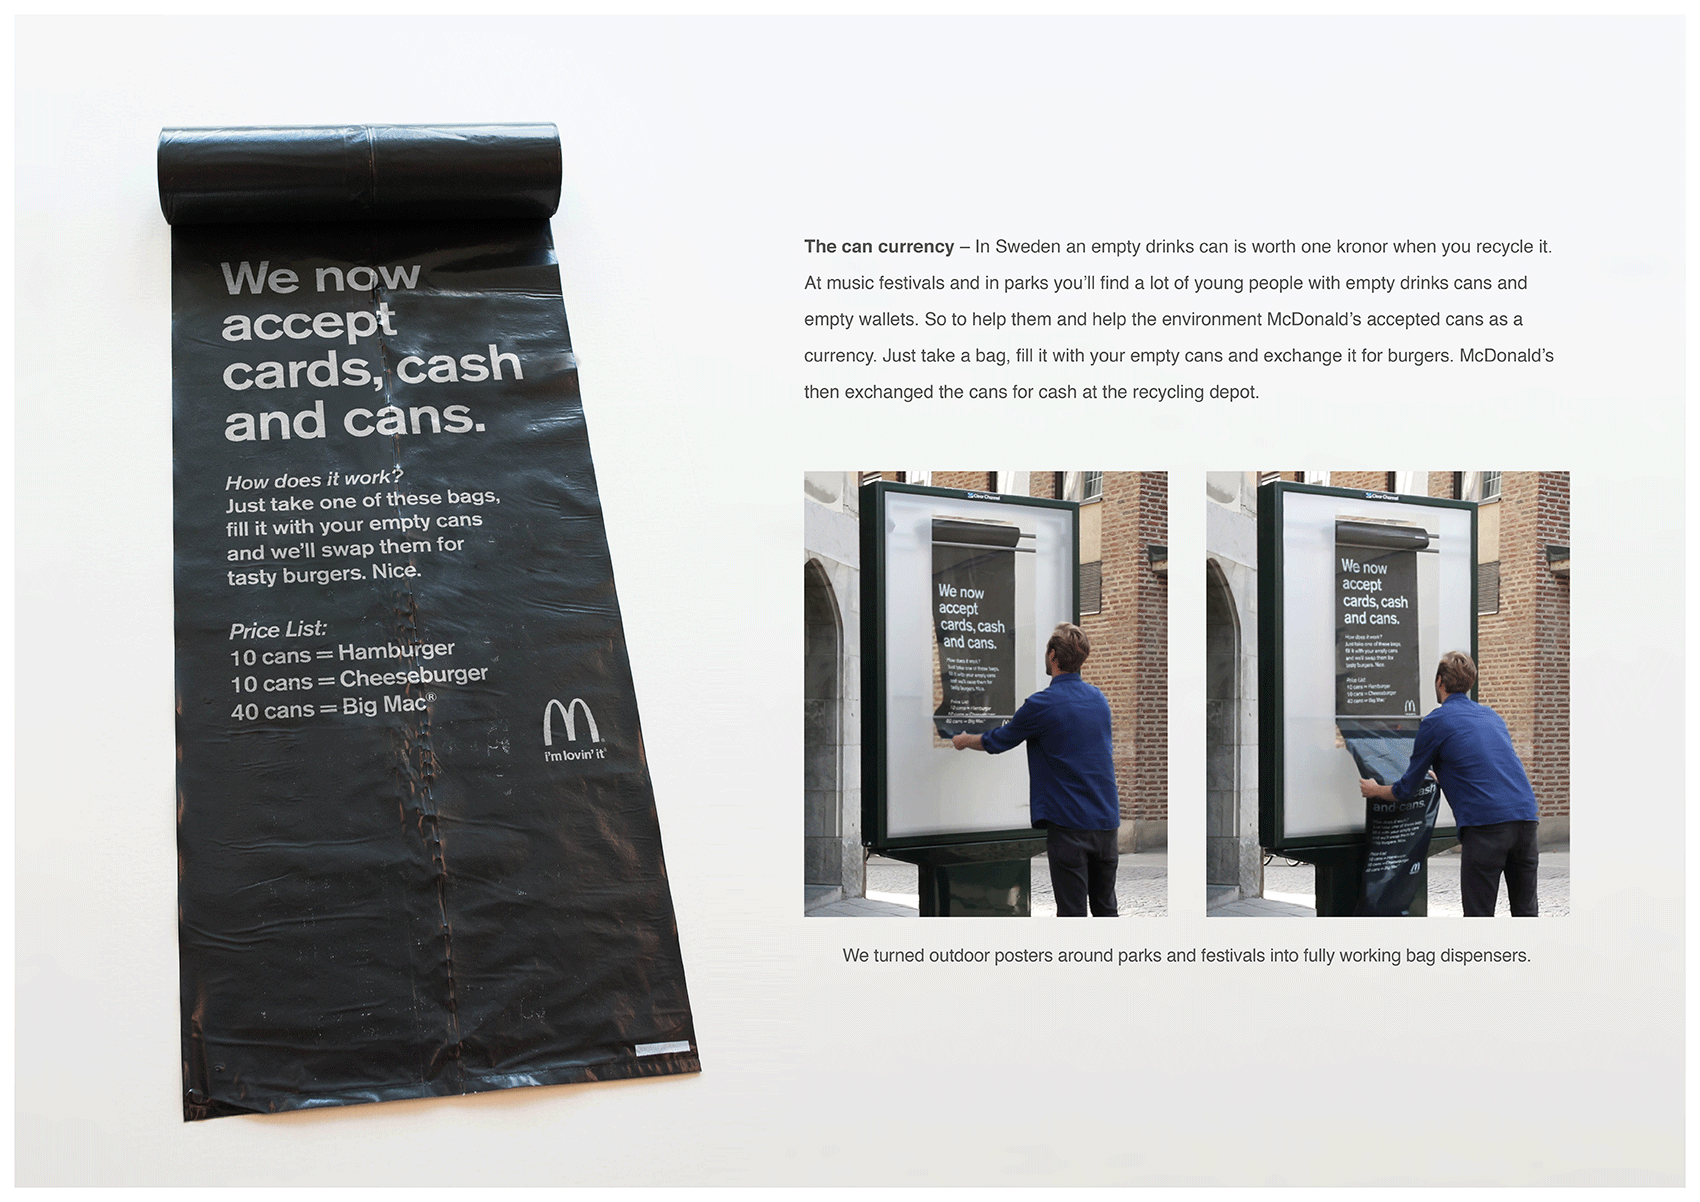 Would You Like To Be Able To Buy A Big Mac With Empty Soda & Beer Cans?